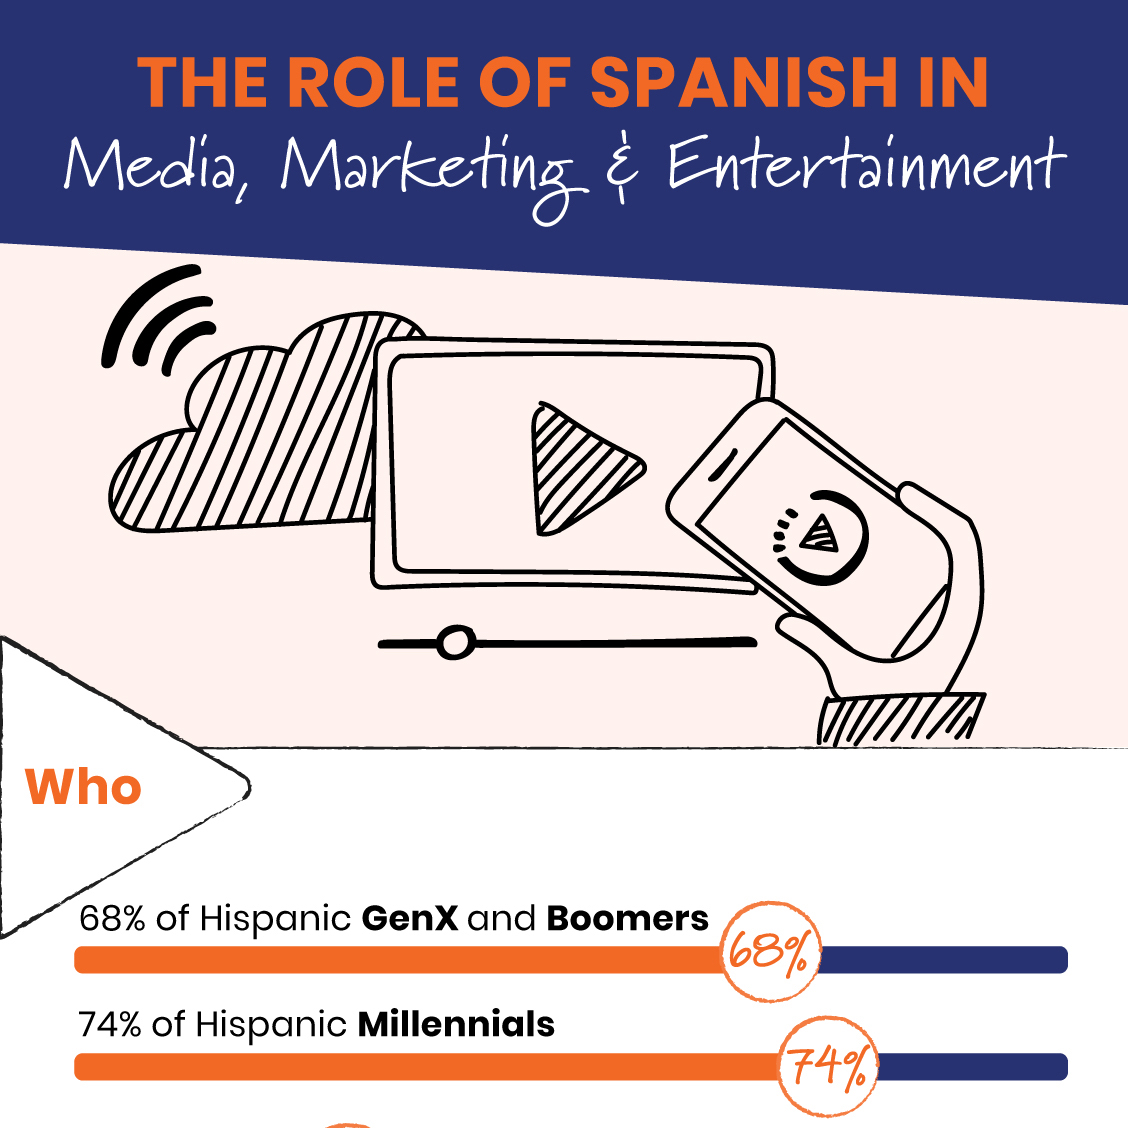 Role of Spanish in Media, Marketing, Entertainment